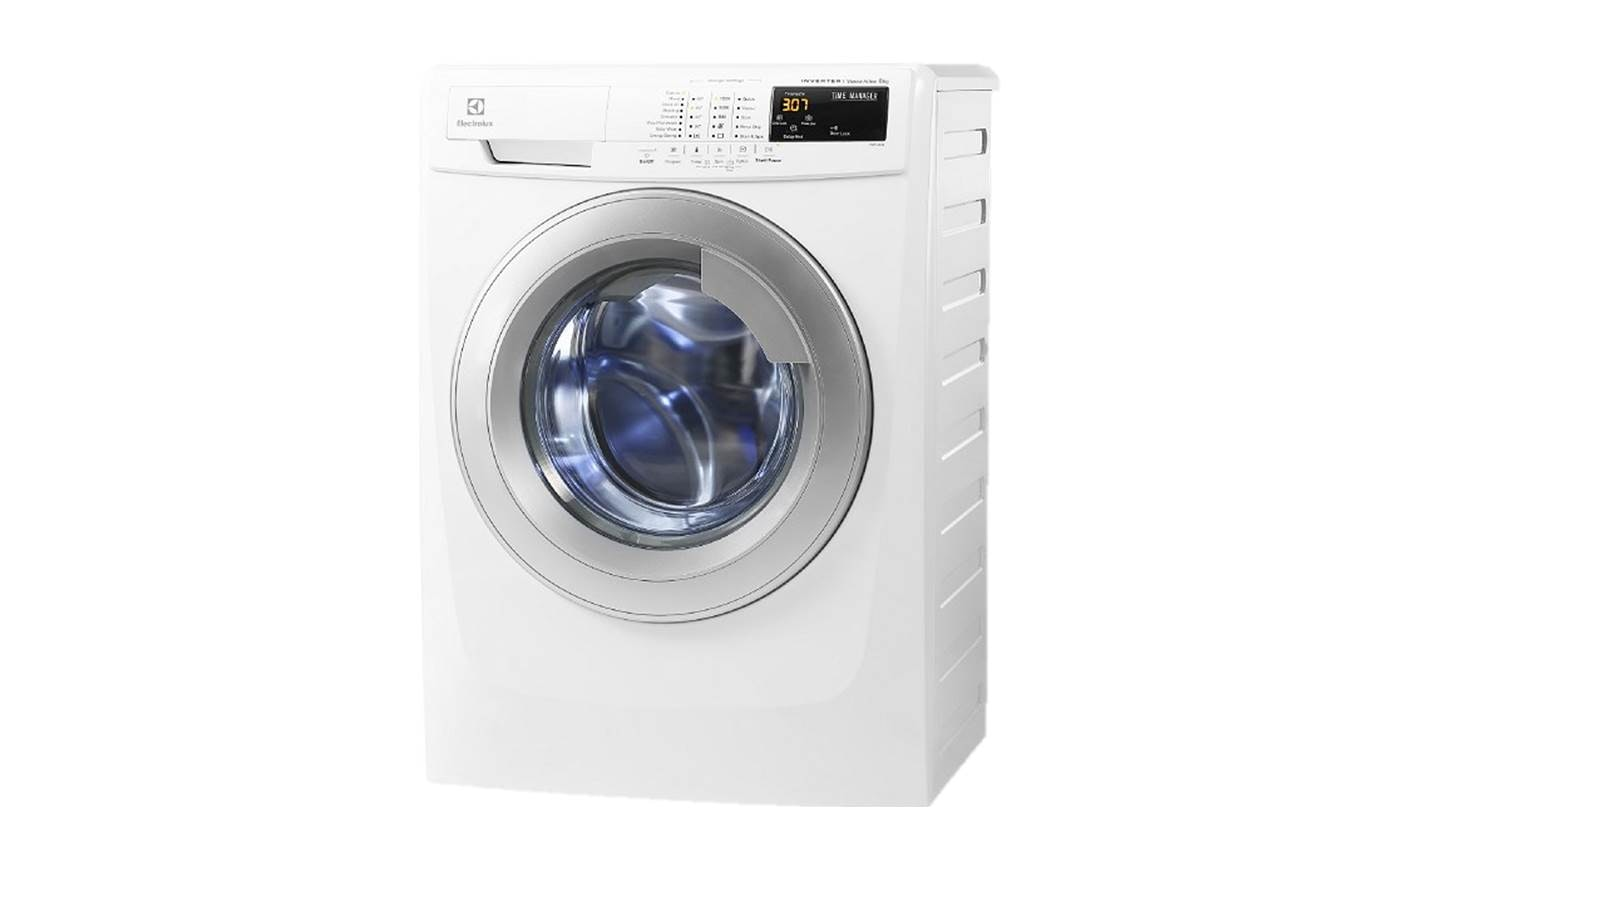 electrolux compact washer. electrolux ewf-12844 8kg front load washer compact